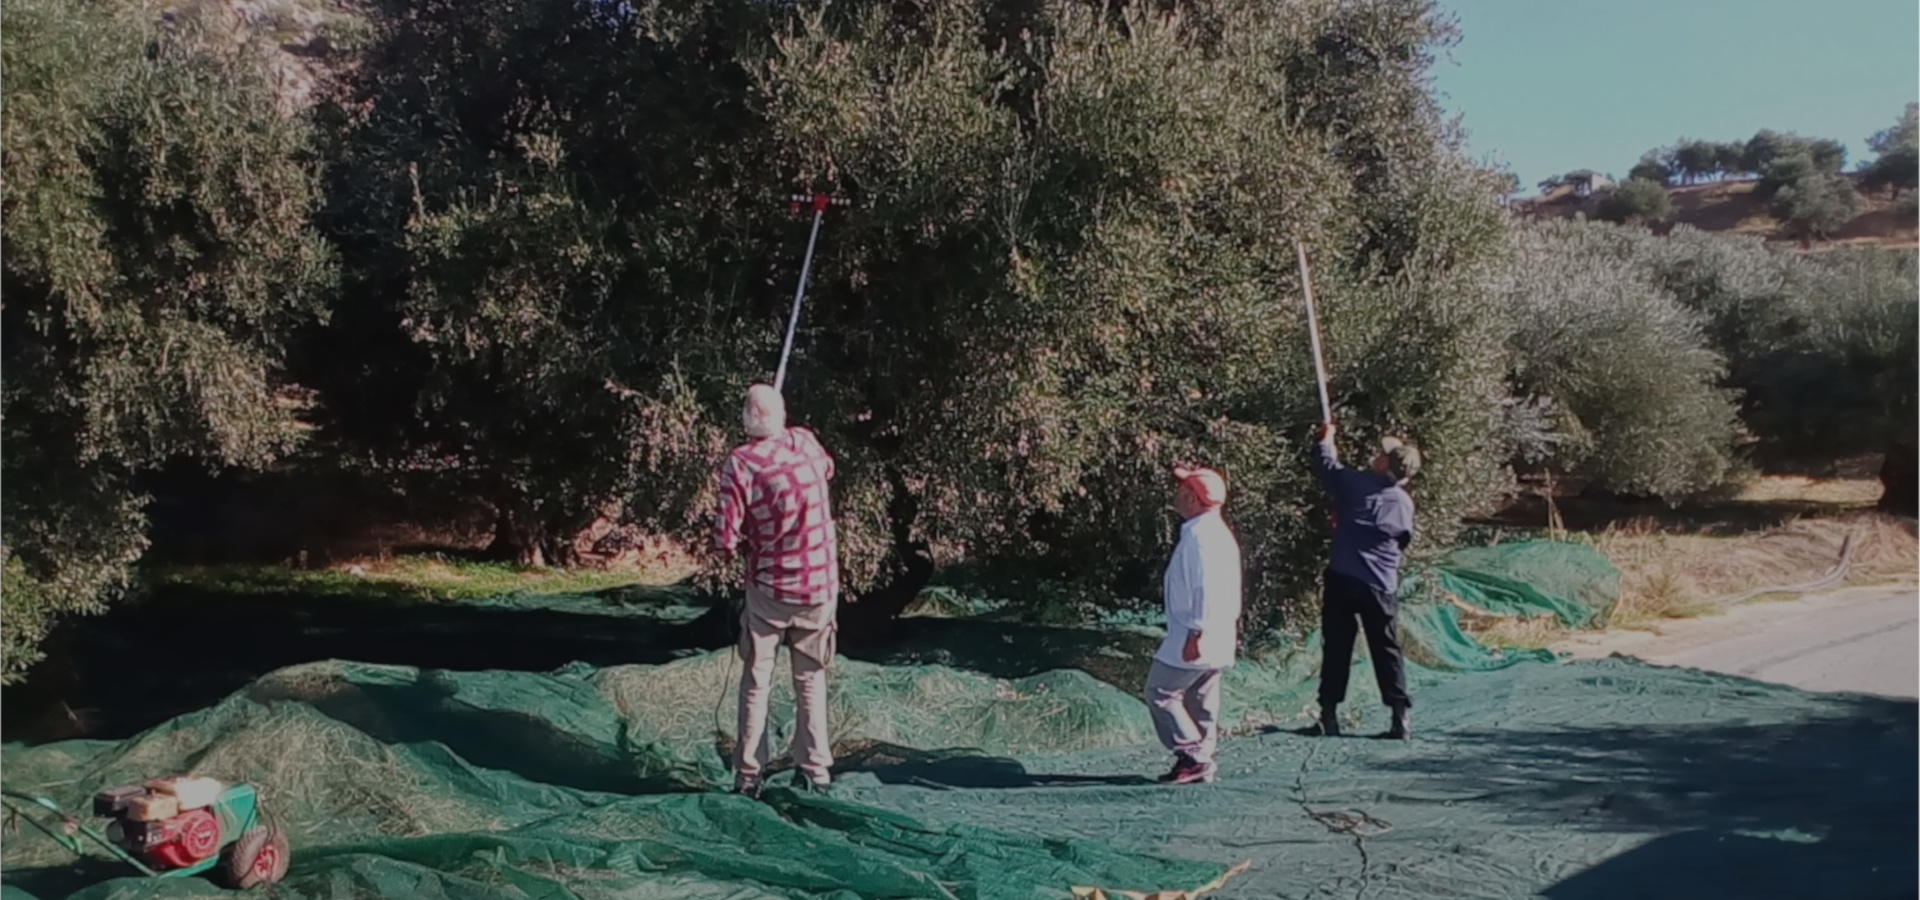 People Harvesting an olive tree